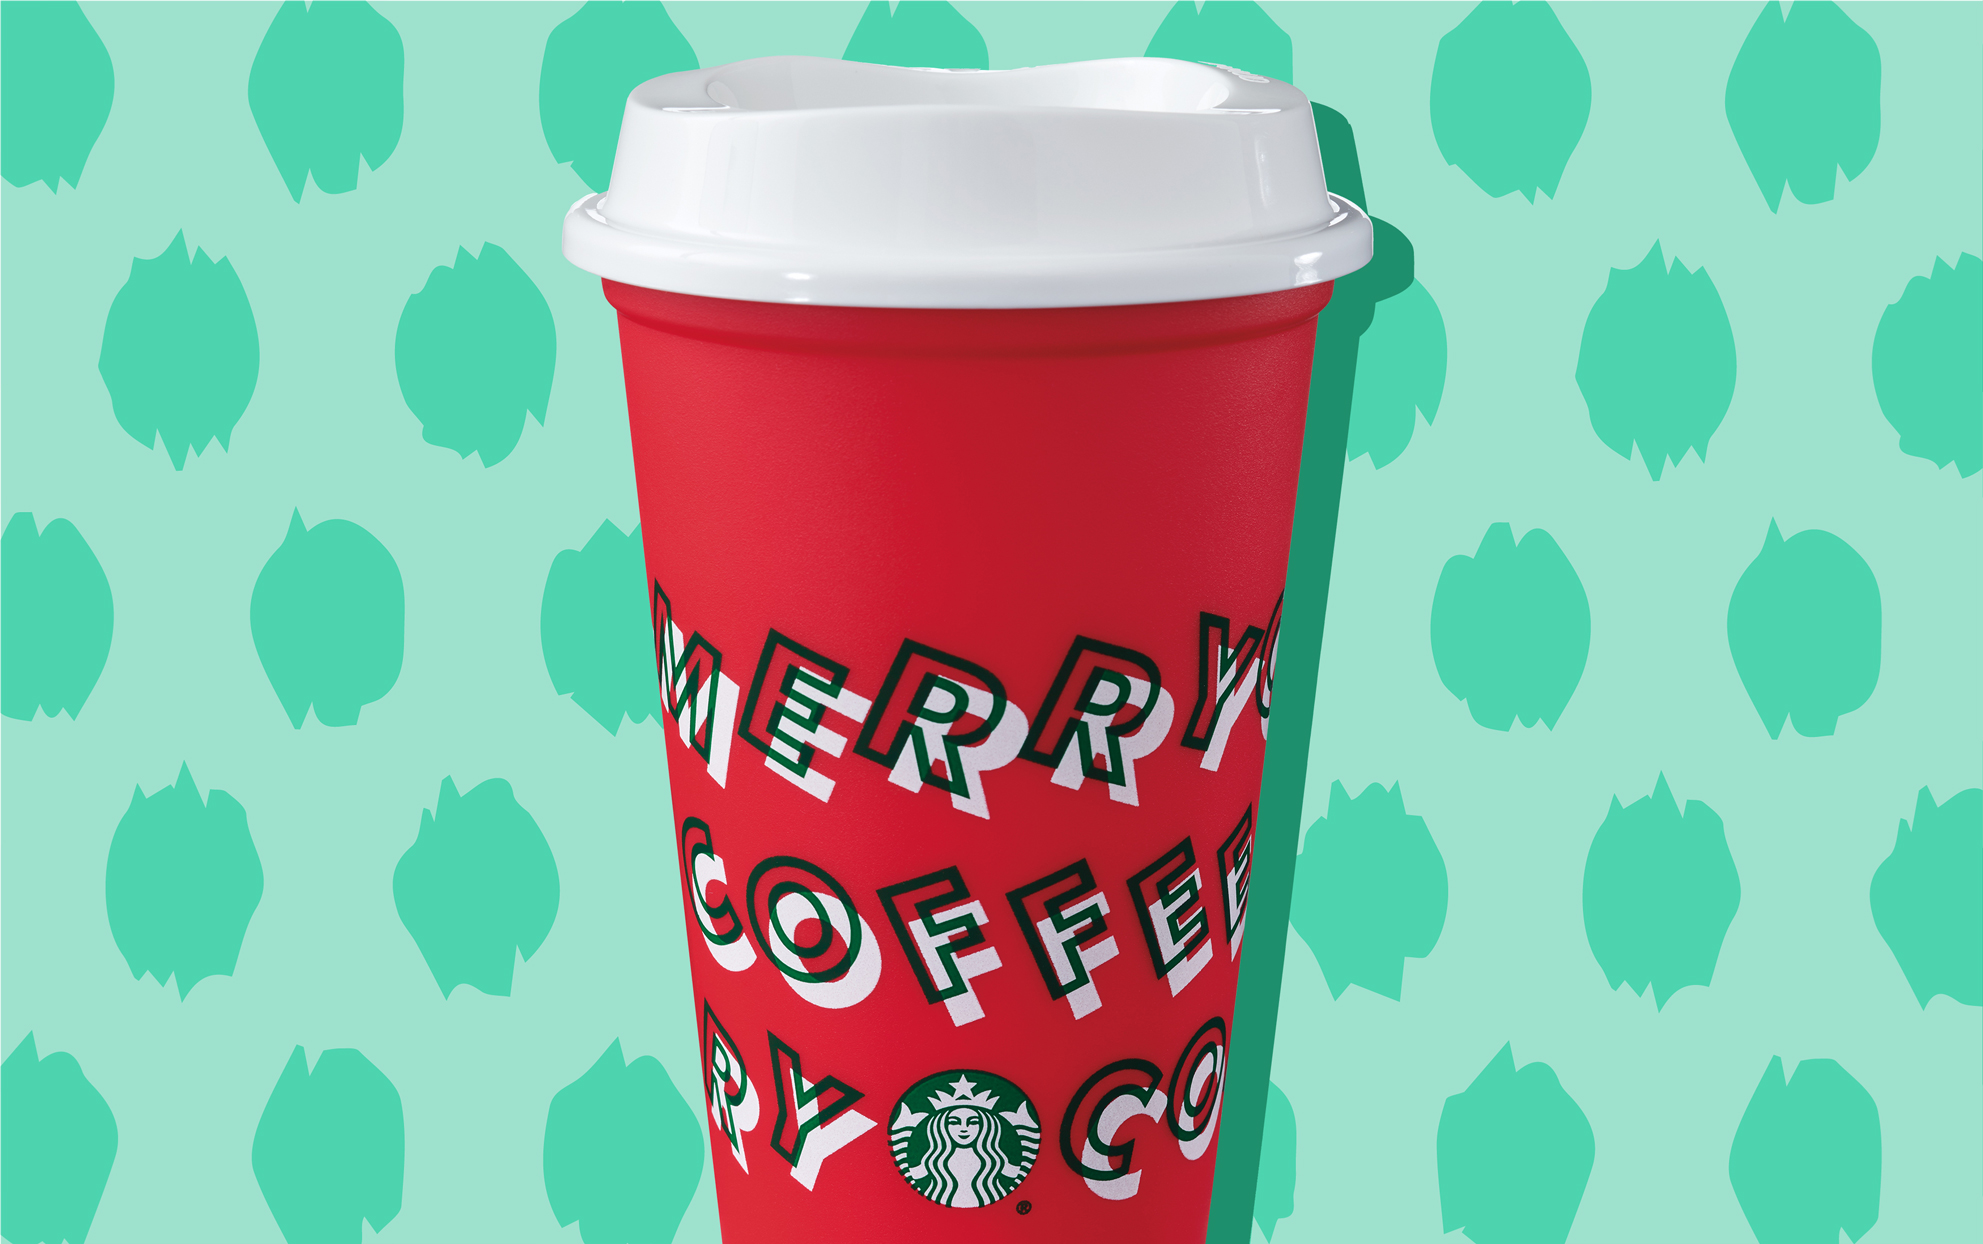 Starbucks holiday red to go cup on a festive background